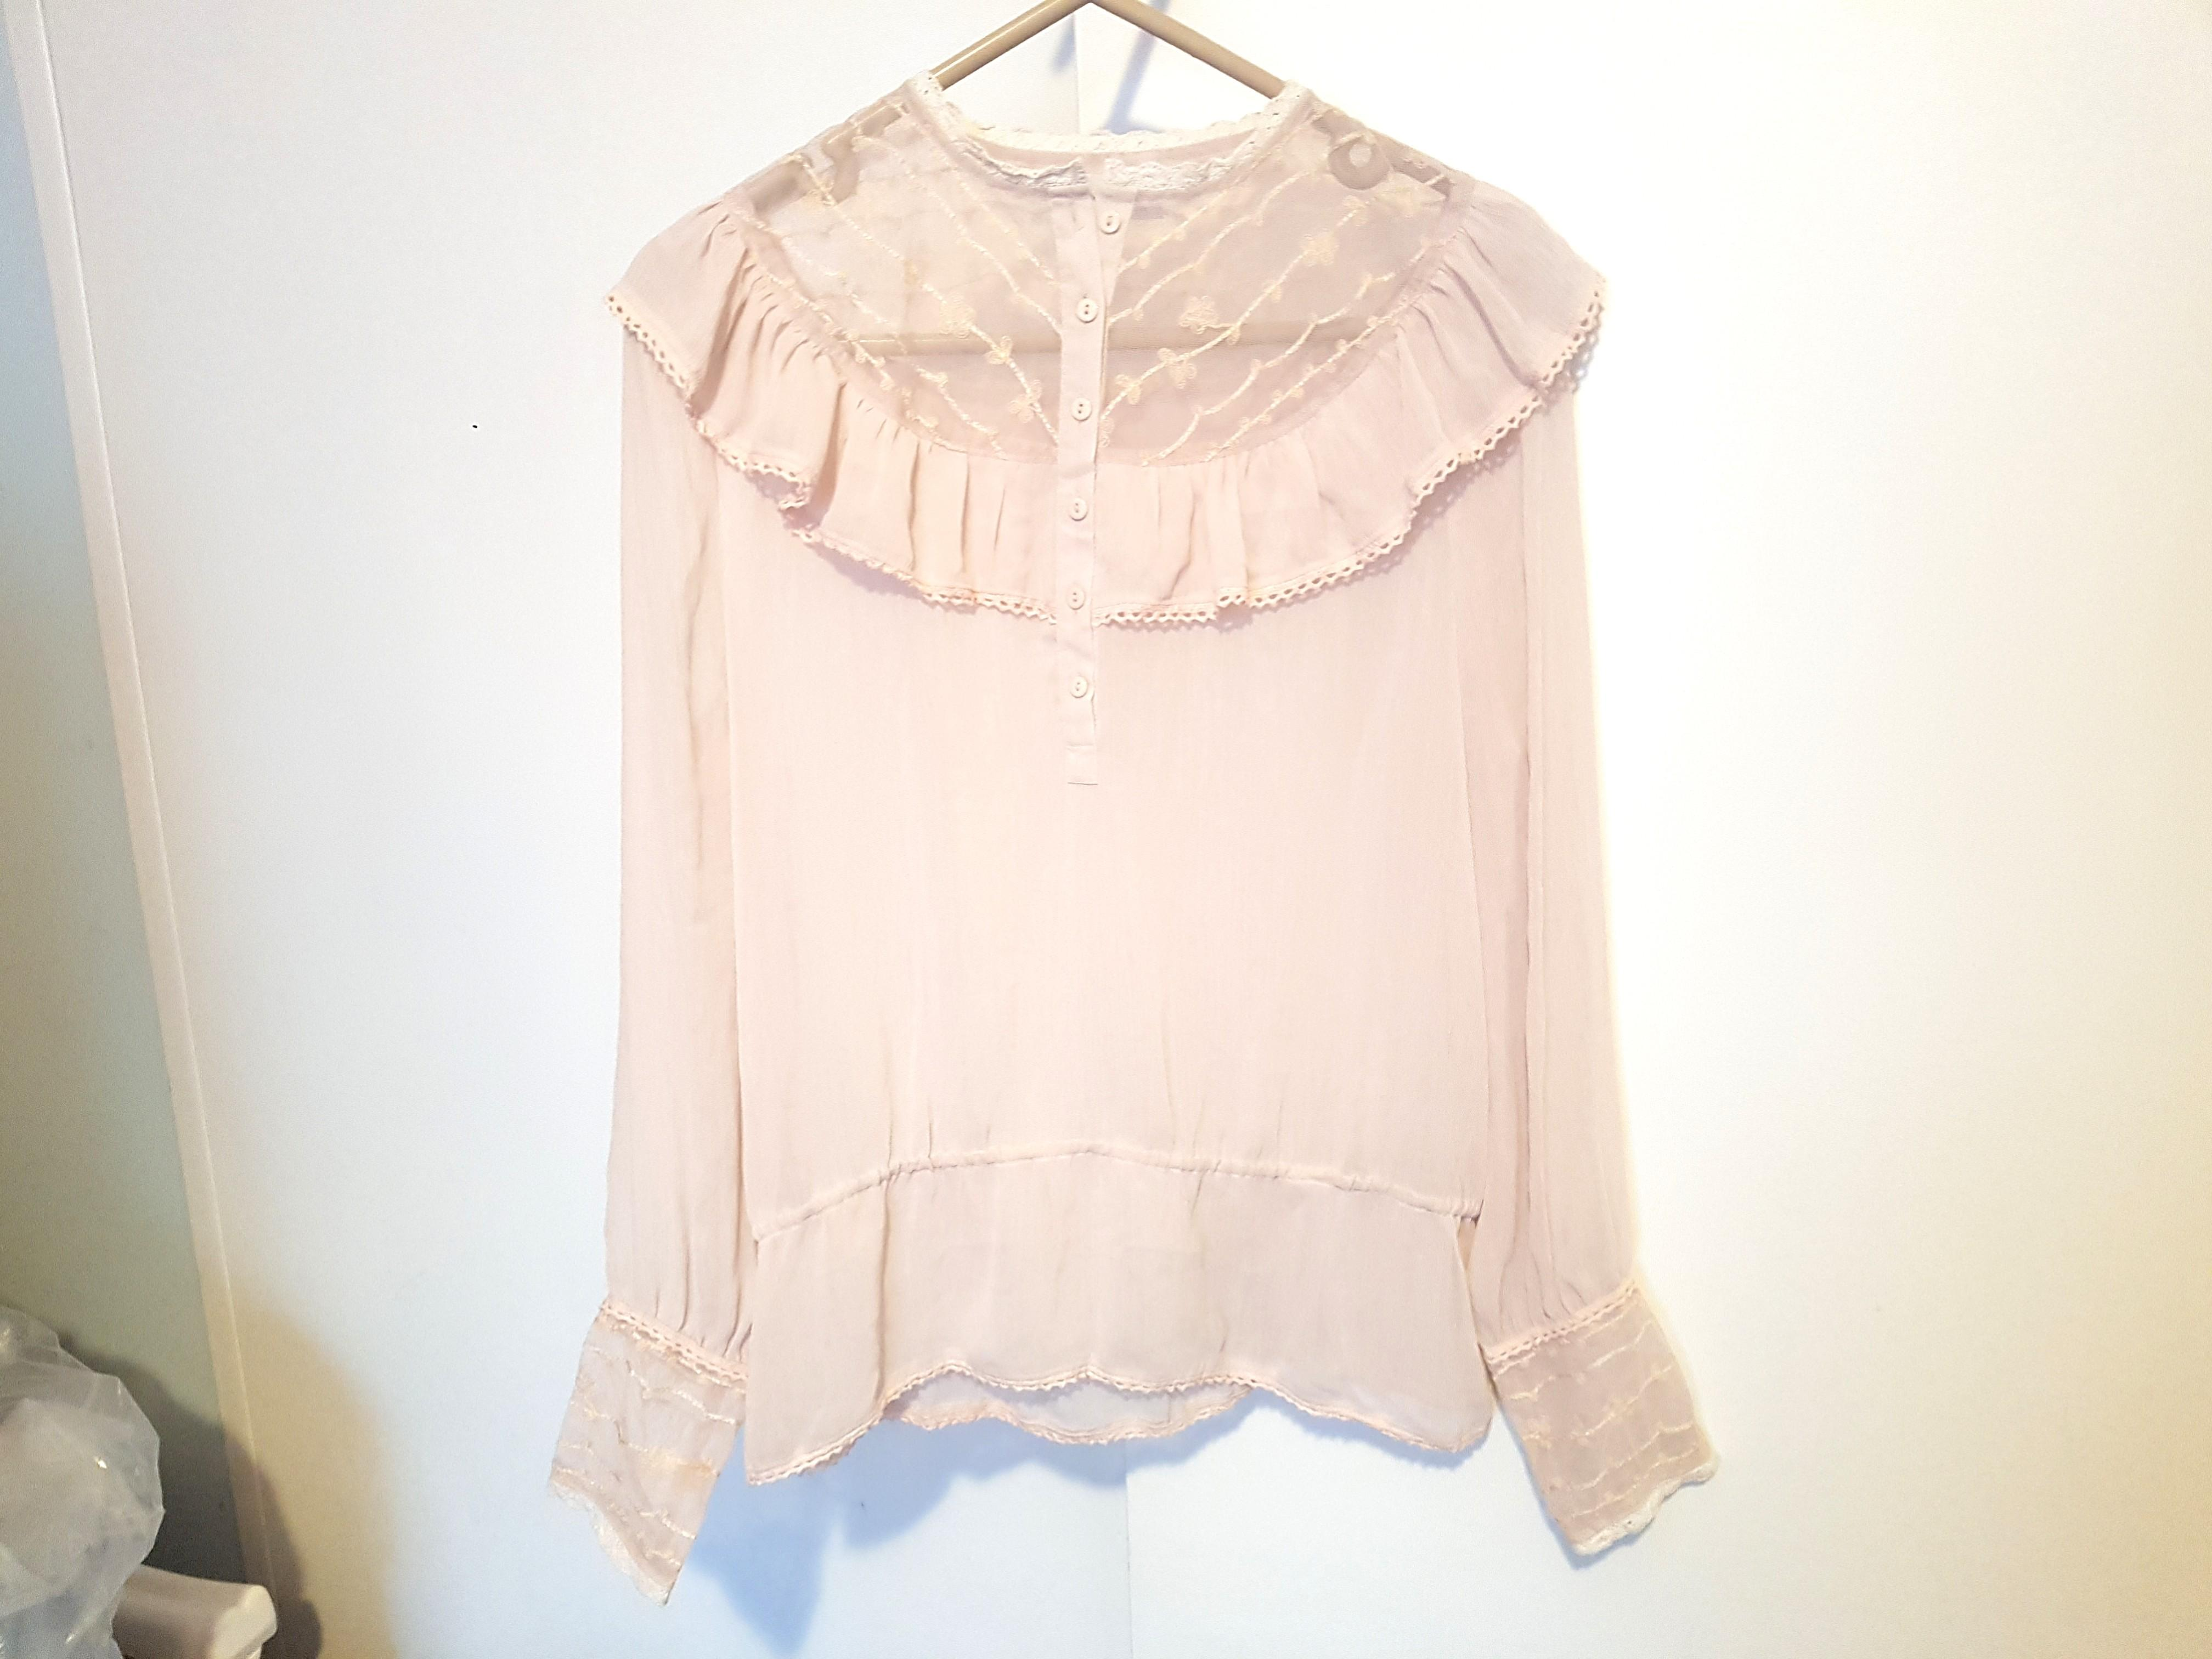 Shheer lace frills vintage style blouse shirt